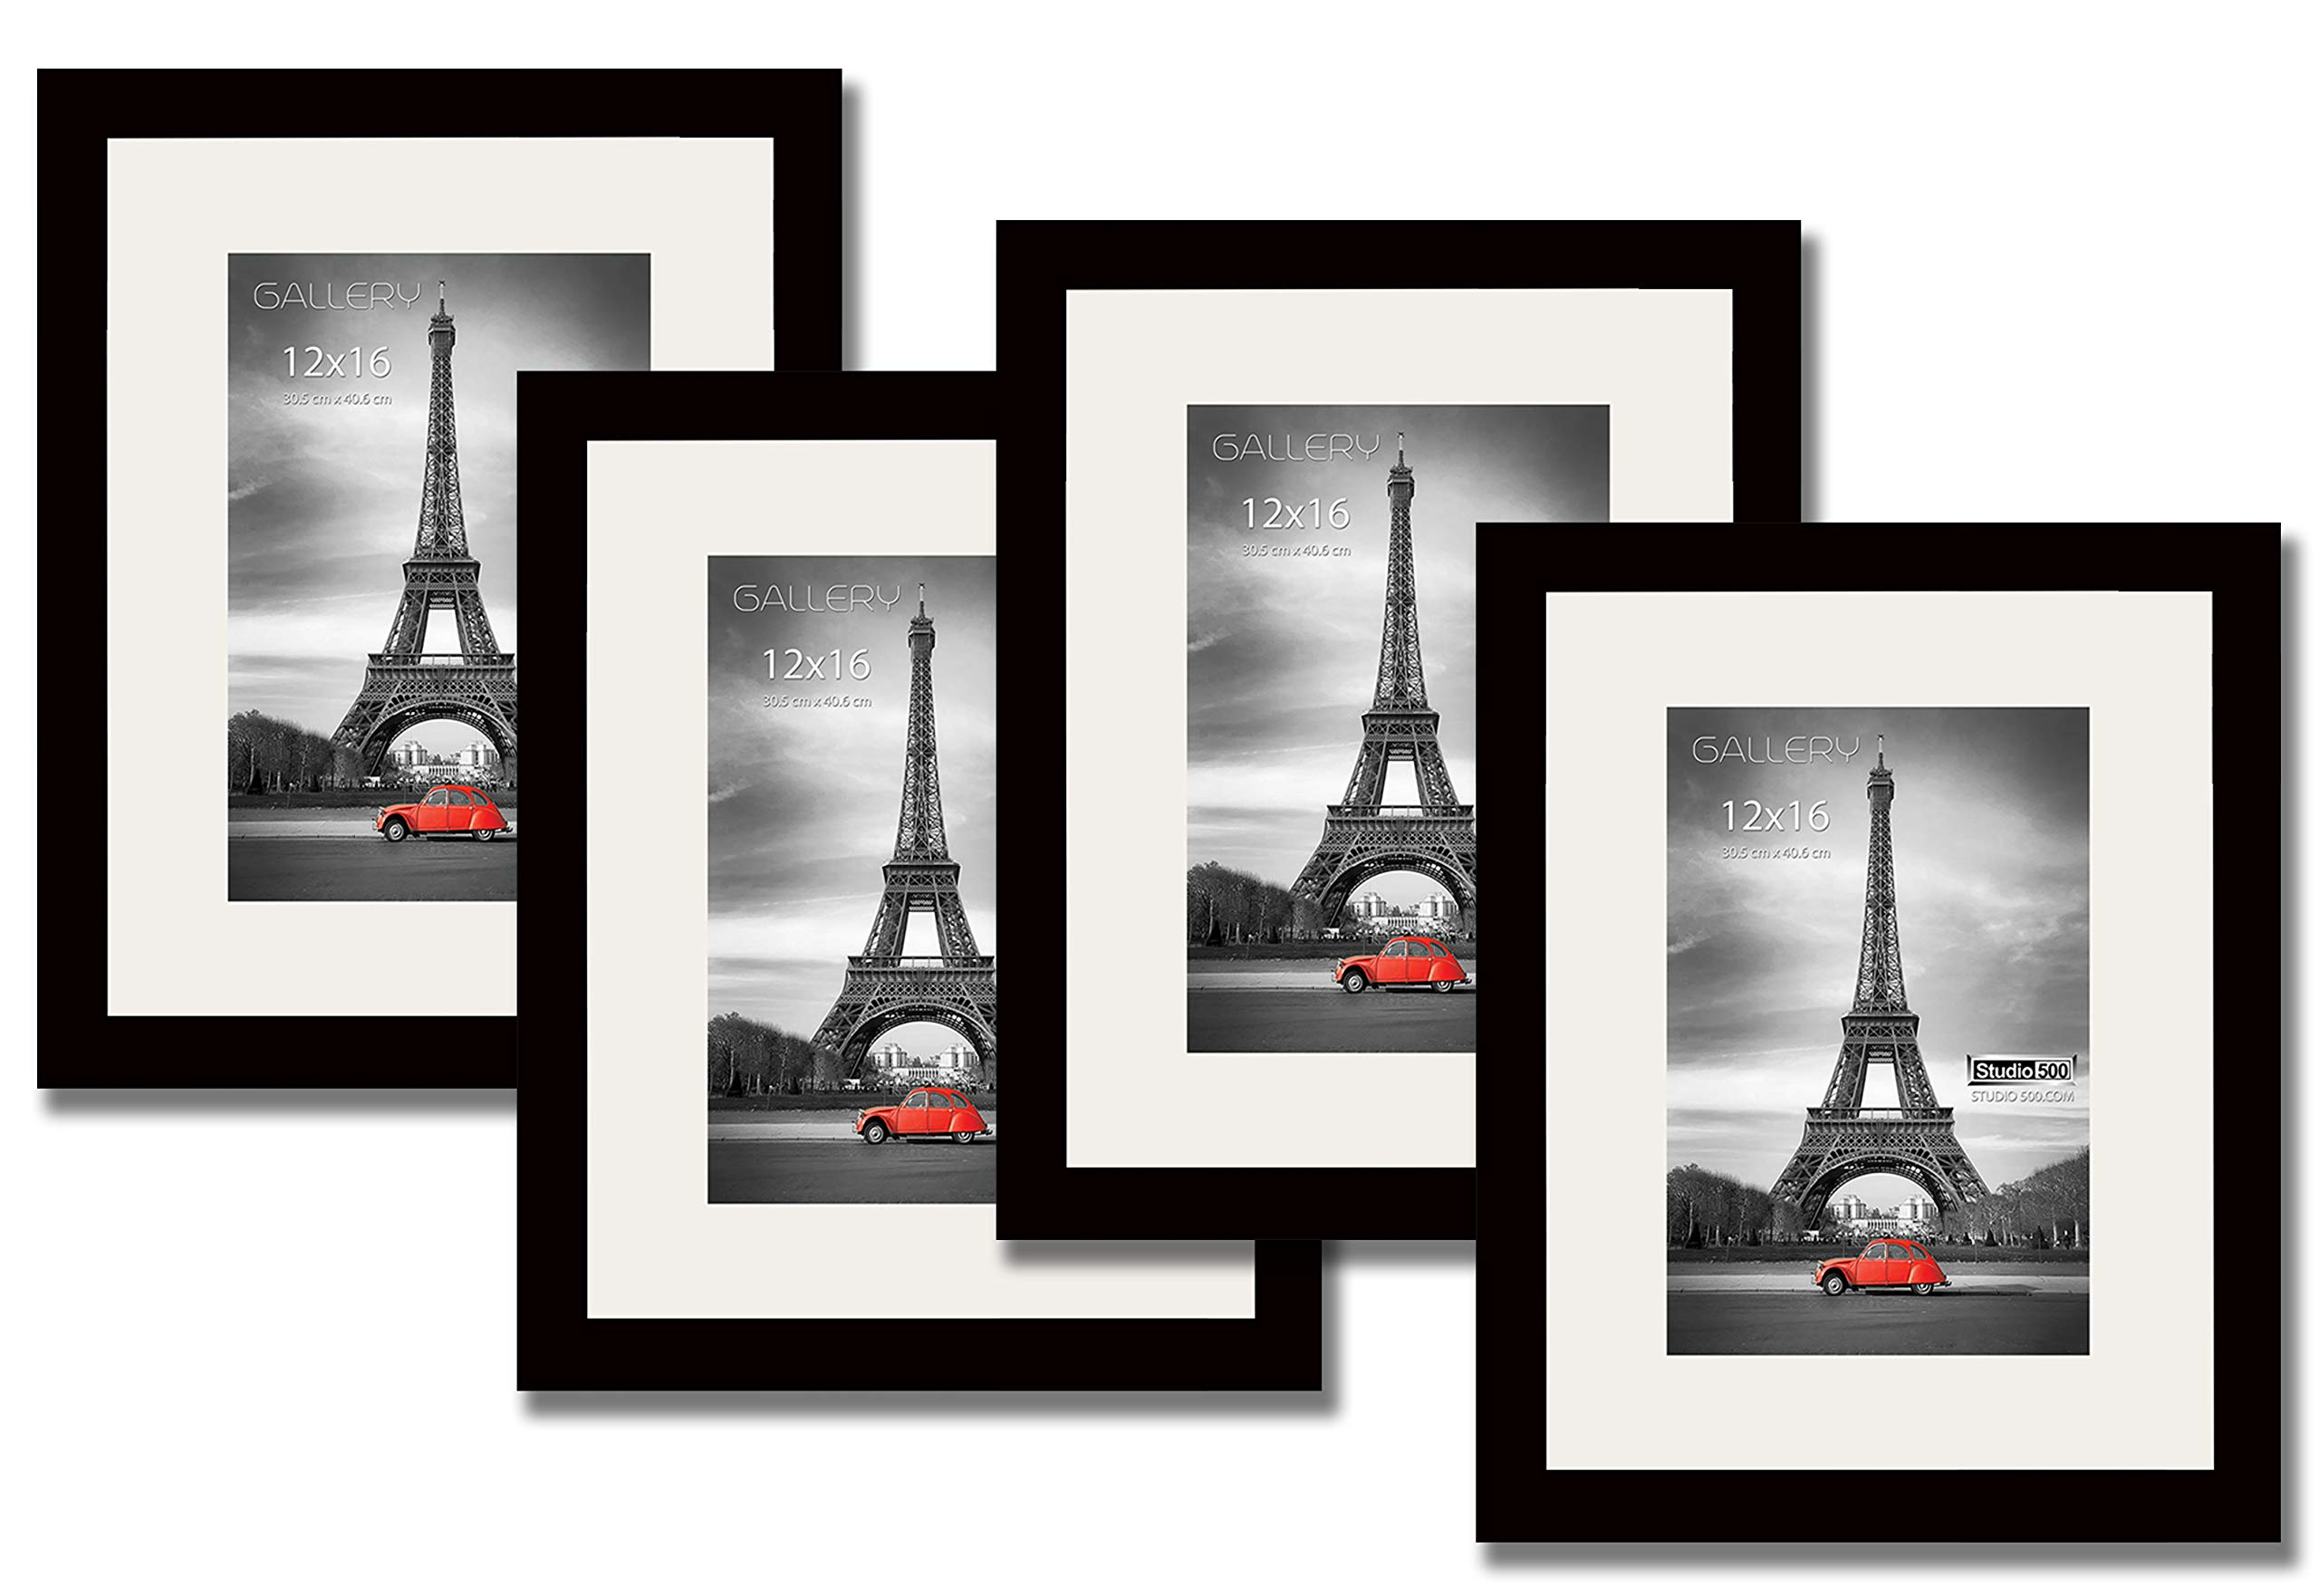 Studio 500, 4 Value Pack Luxury Set of 12 by 16-inch Real Solid Pine Wood Photo Frames, Tempered Glass, with Acid Free Ivory White Core Mat Board for 8x12 Pictures, Comes in Two Colors, (Black)